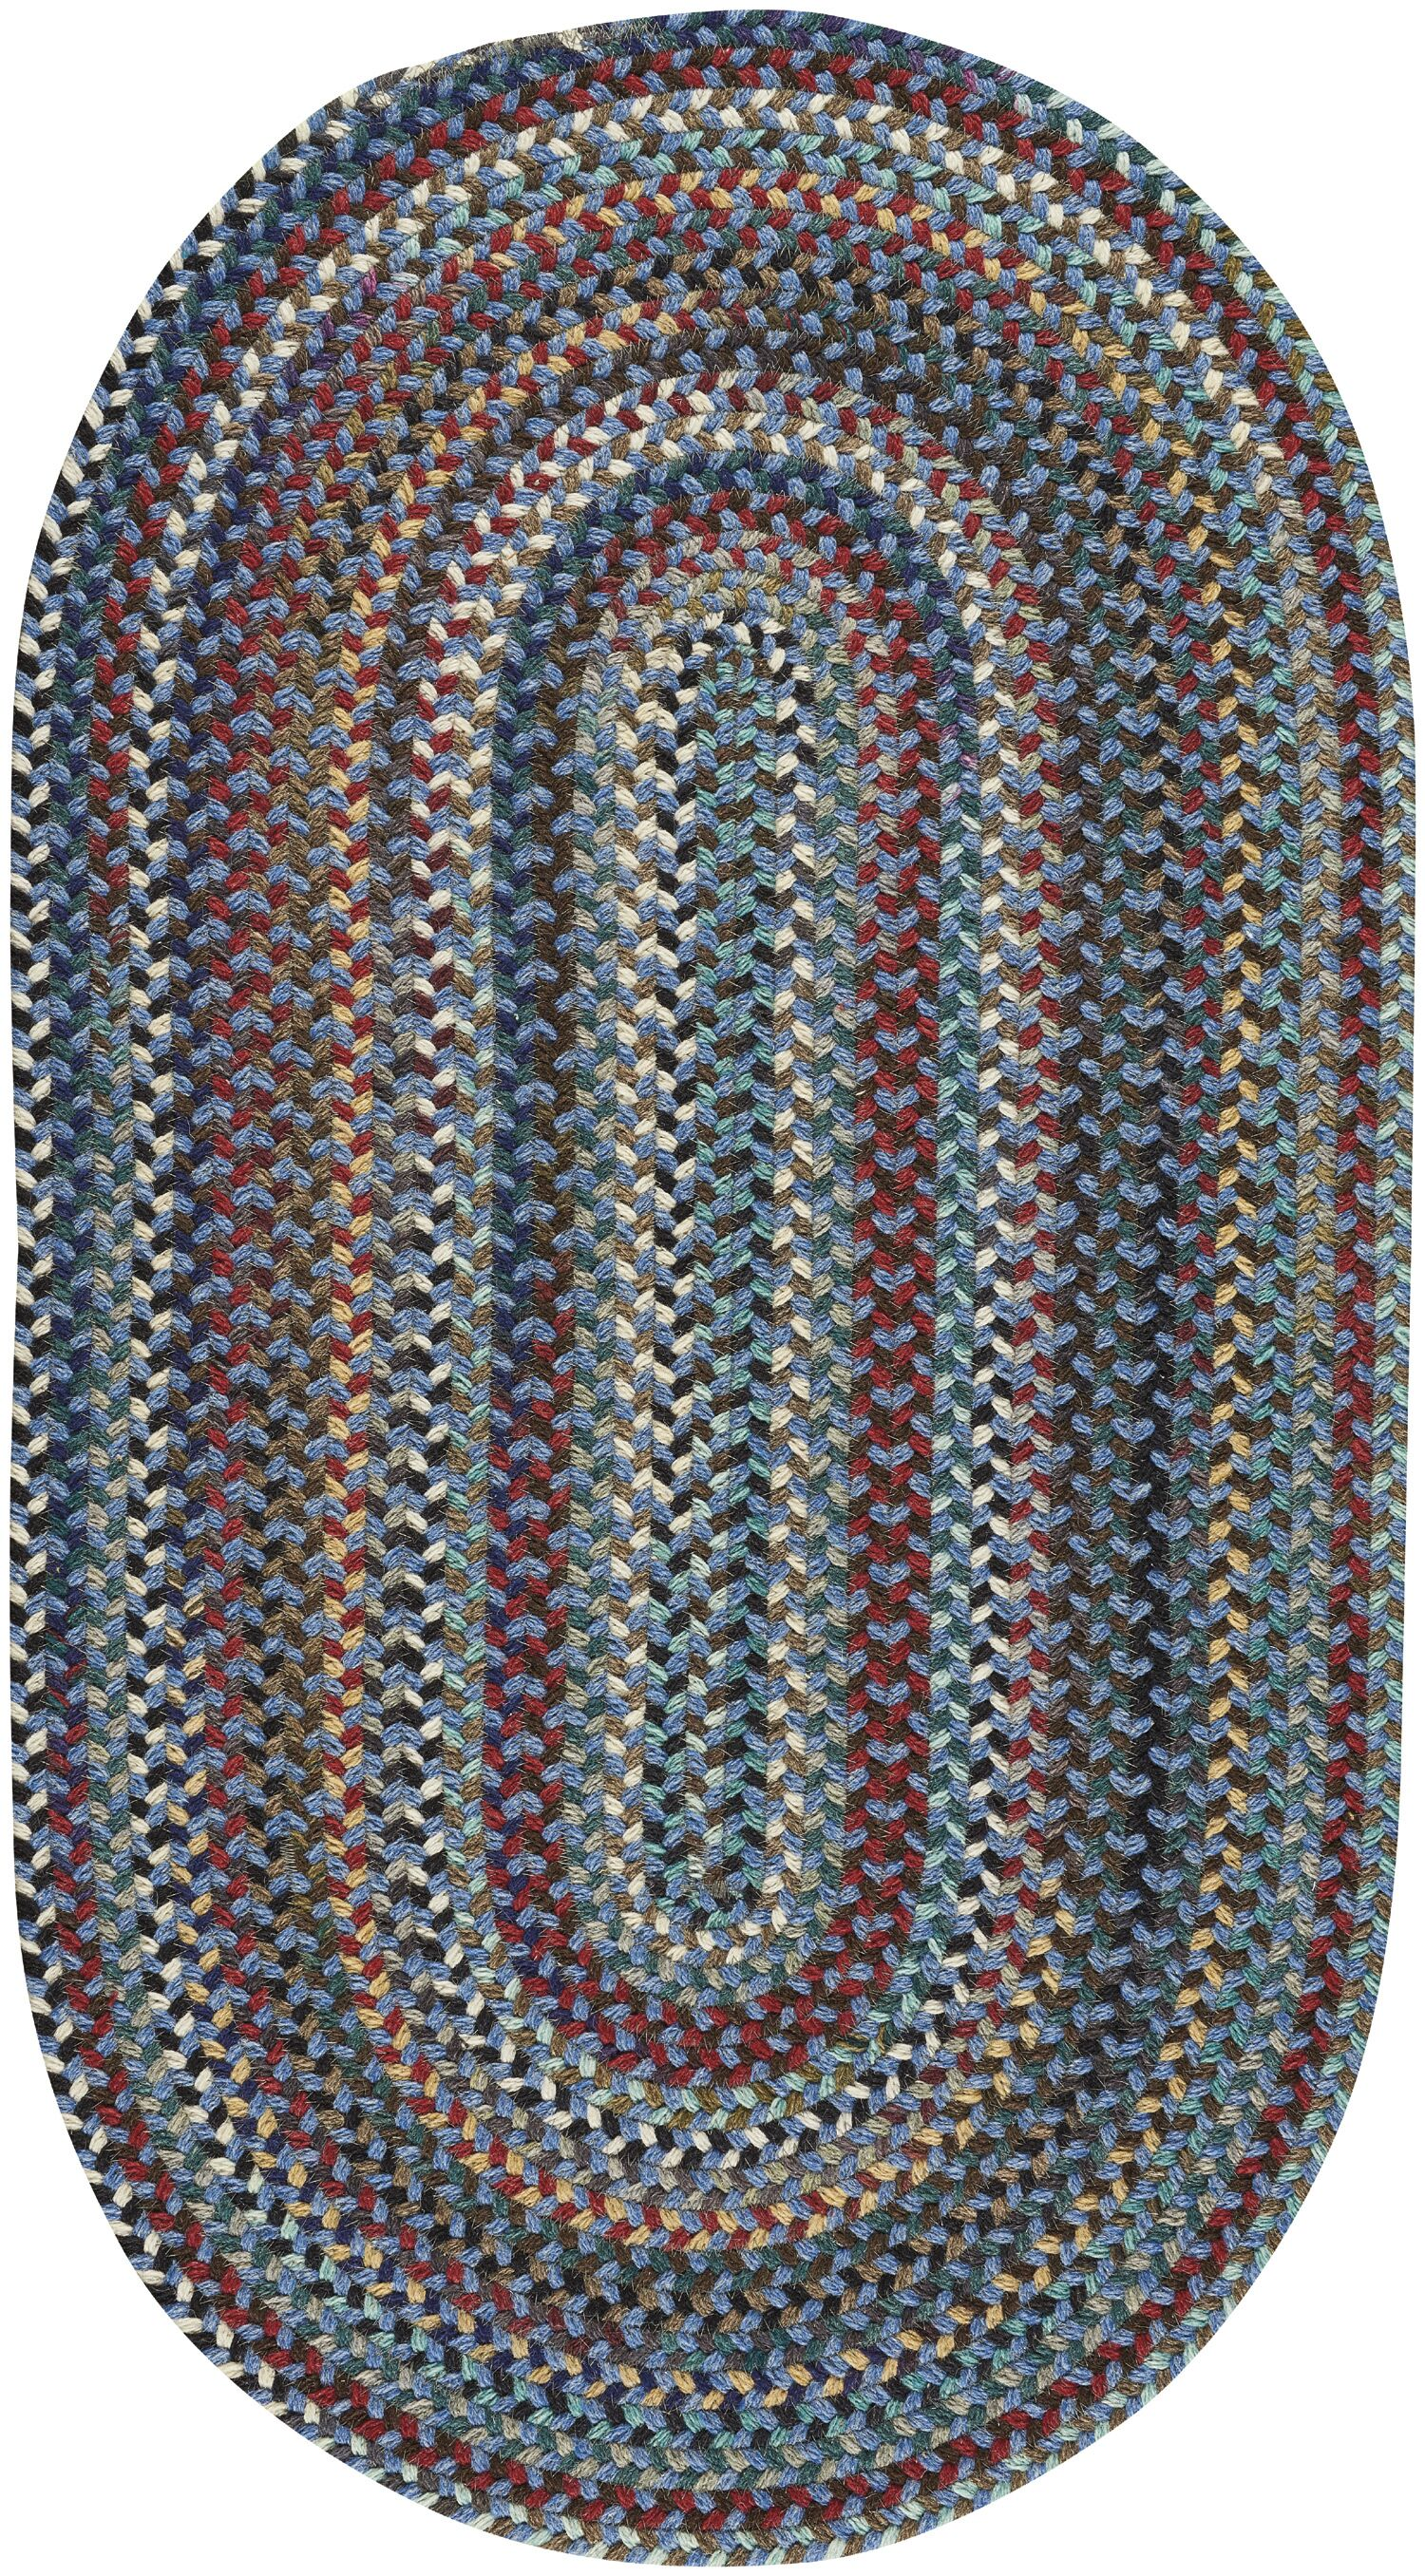 Heidi Blue/Red Area Rug Rug Size: Round 7'6